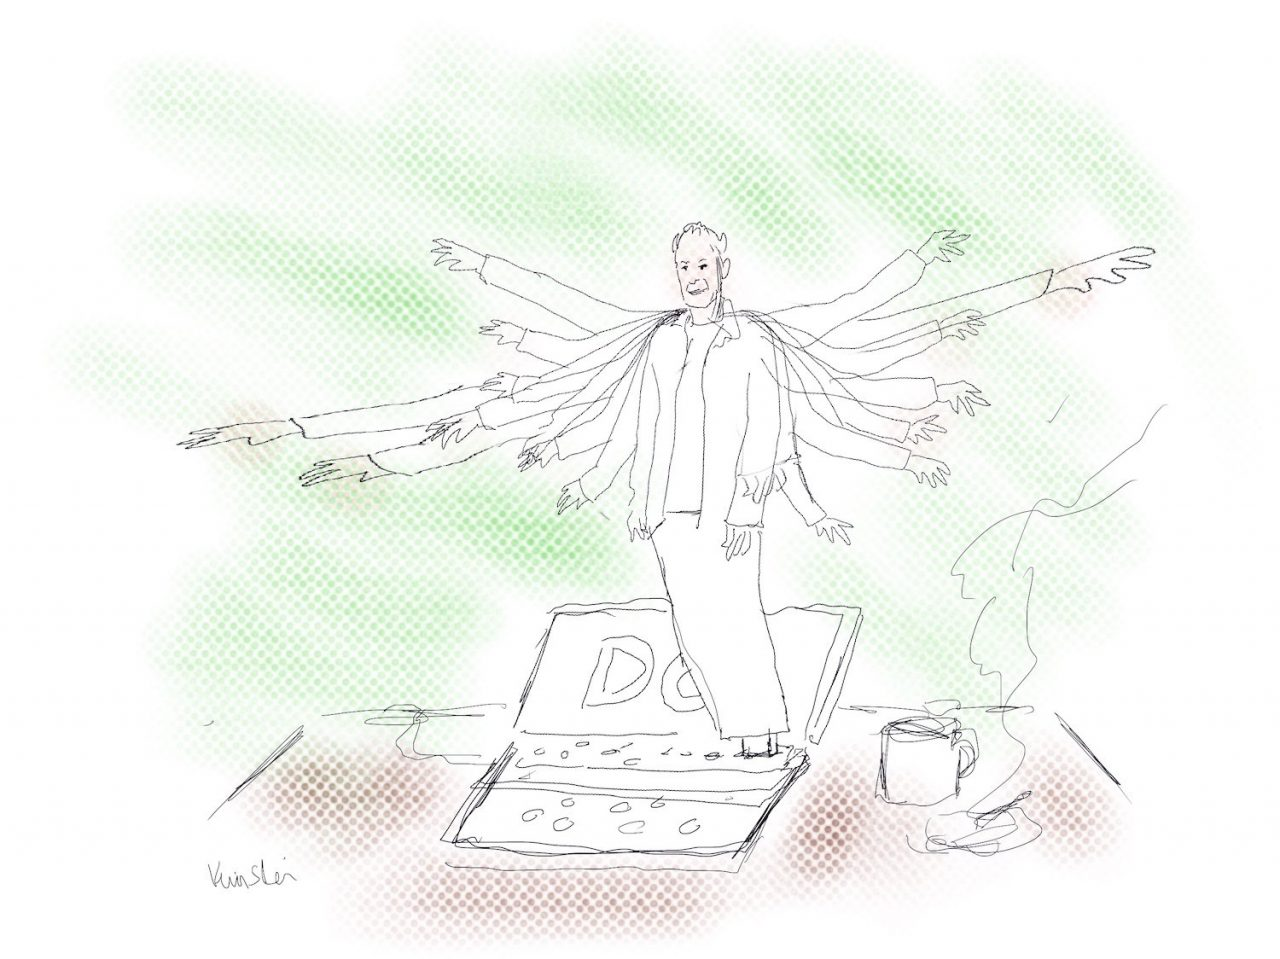 A sketch of Dennis Cooper with many arms rises out of a laptop that has his blog on the screen.